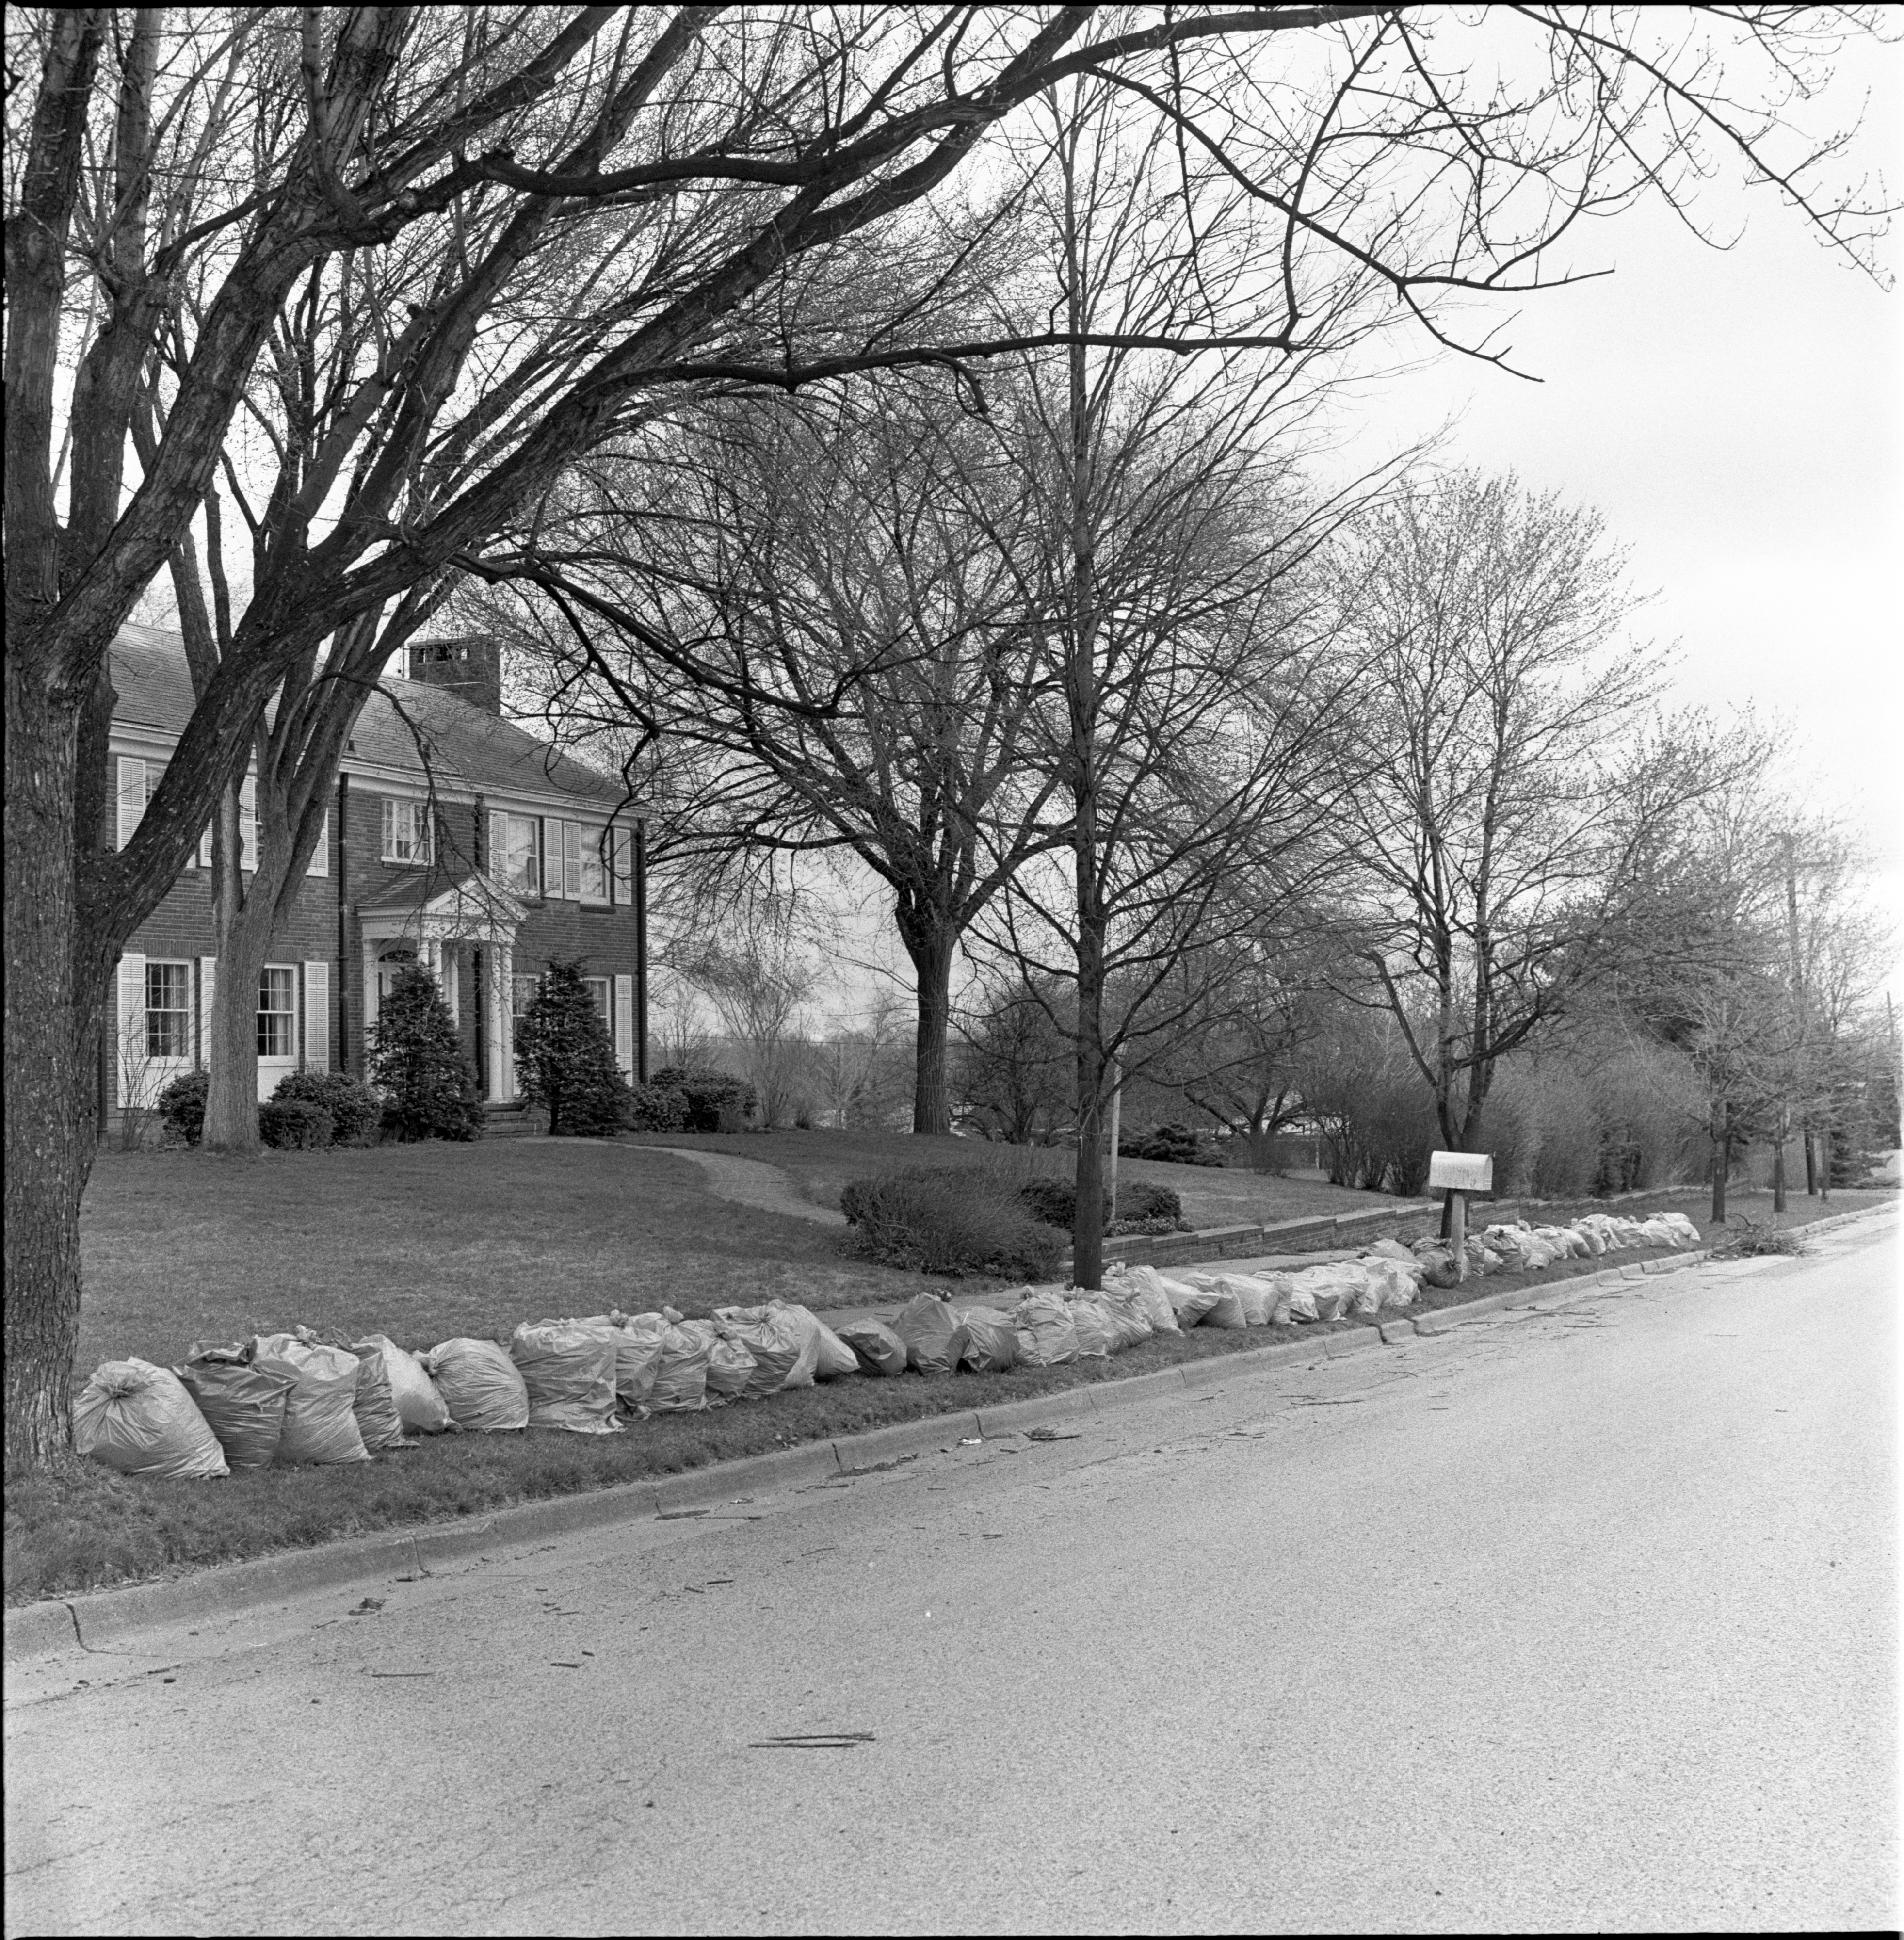 Spring Cleanup Yields 78 Bags Of Yard Refuse In Front Of 2101 Belmont Road, April 1972 image